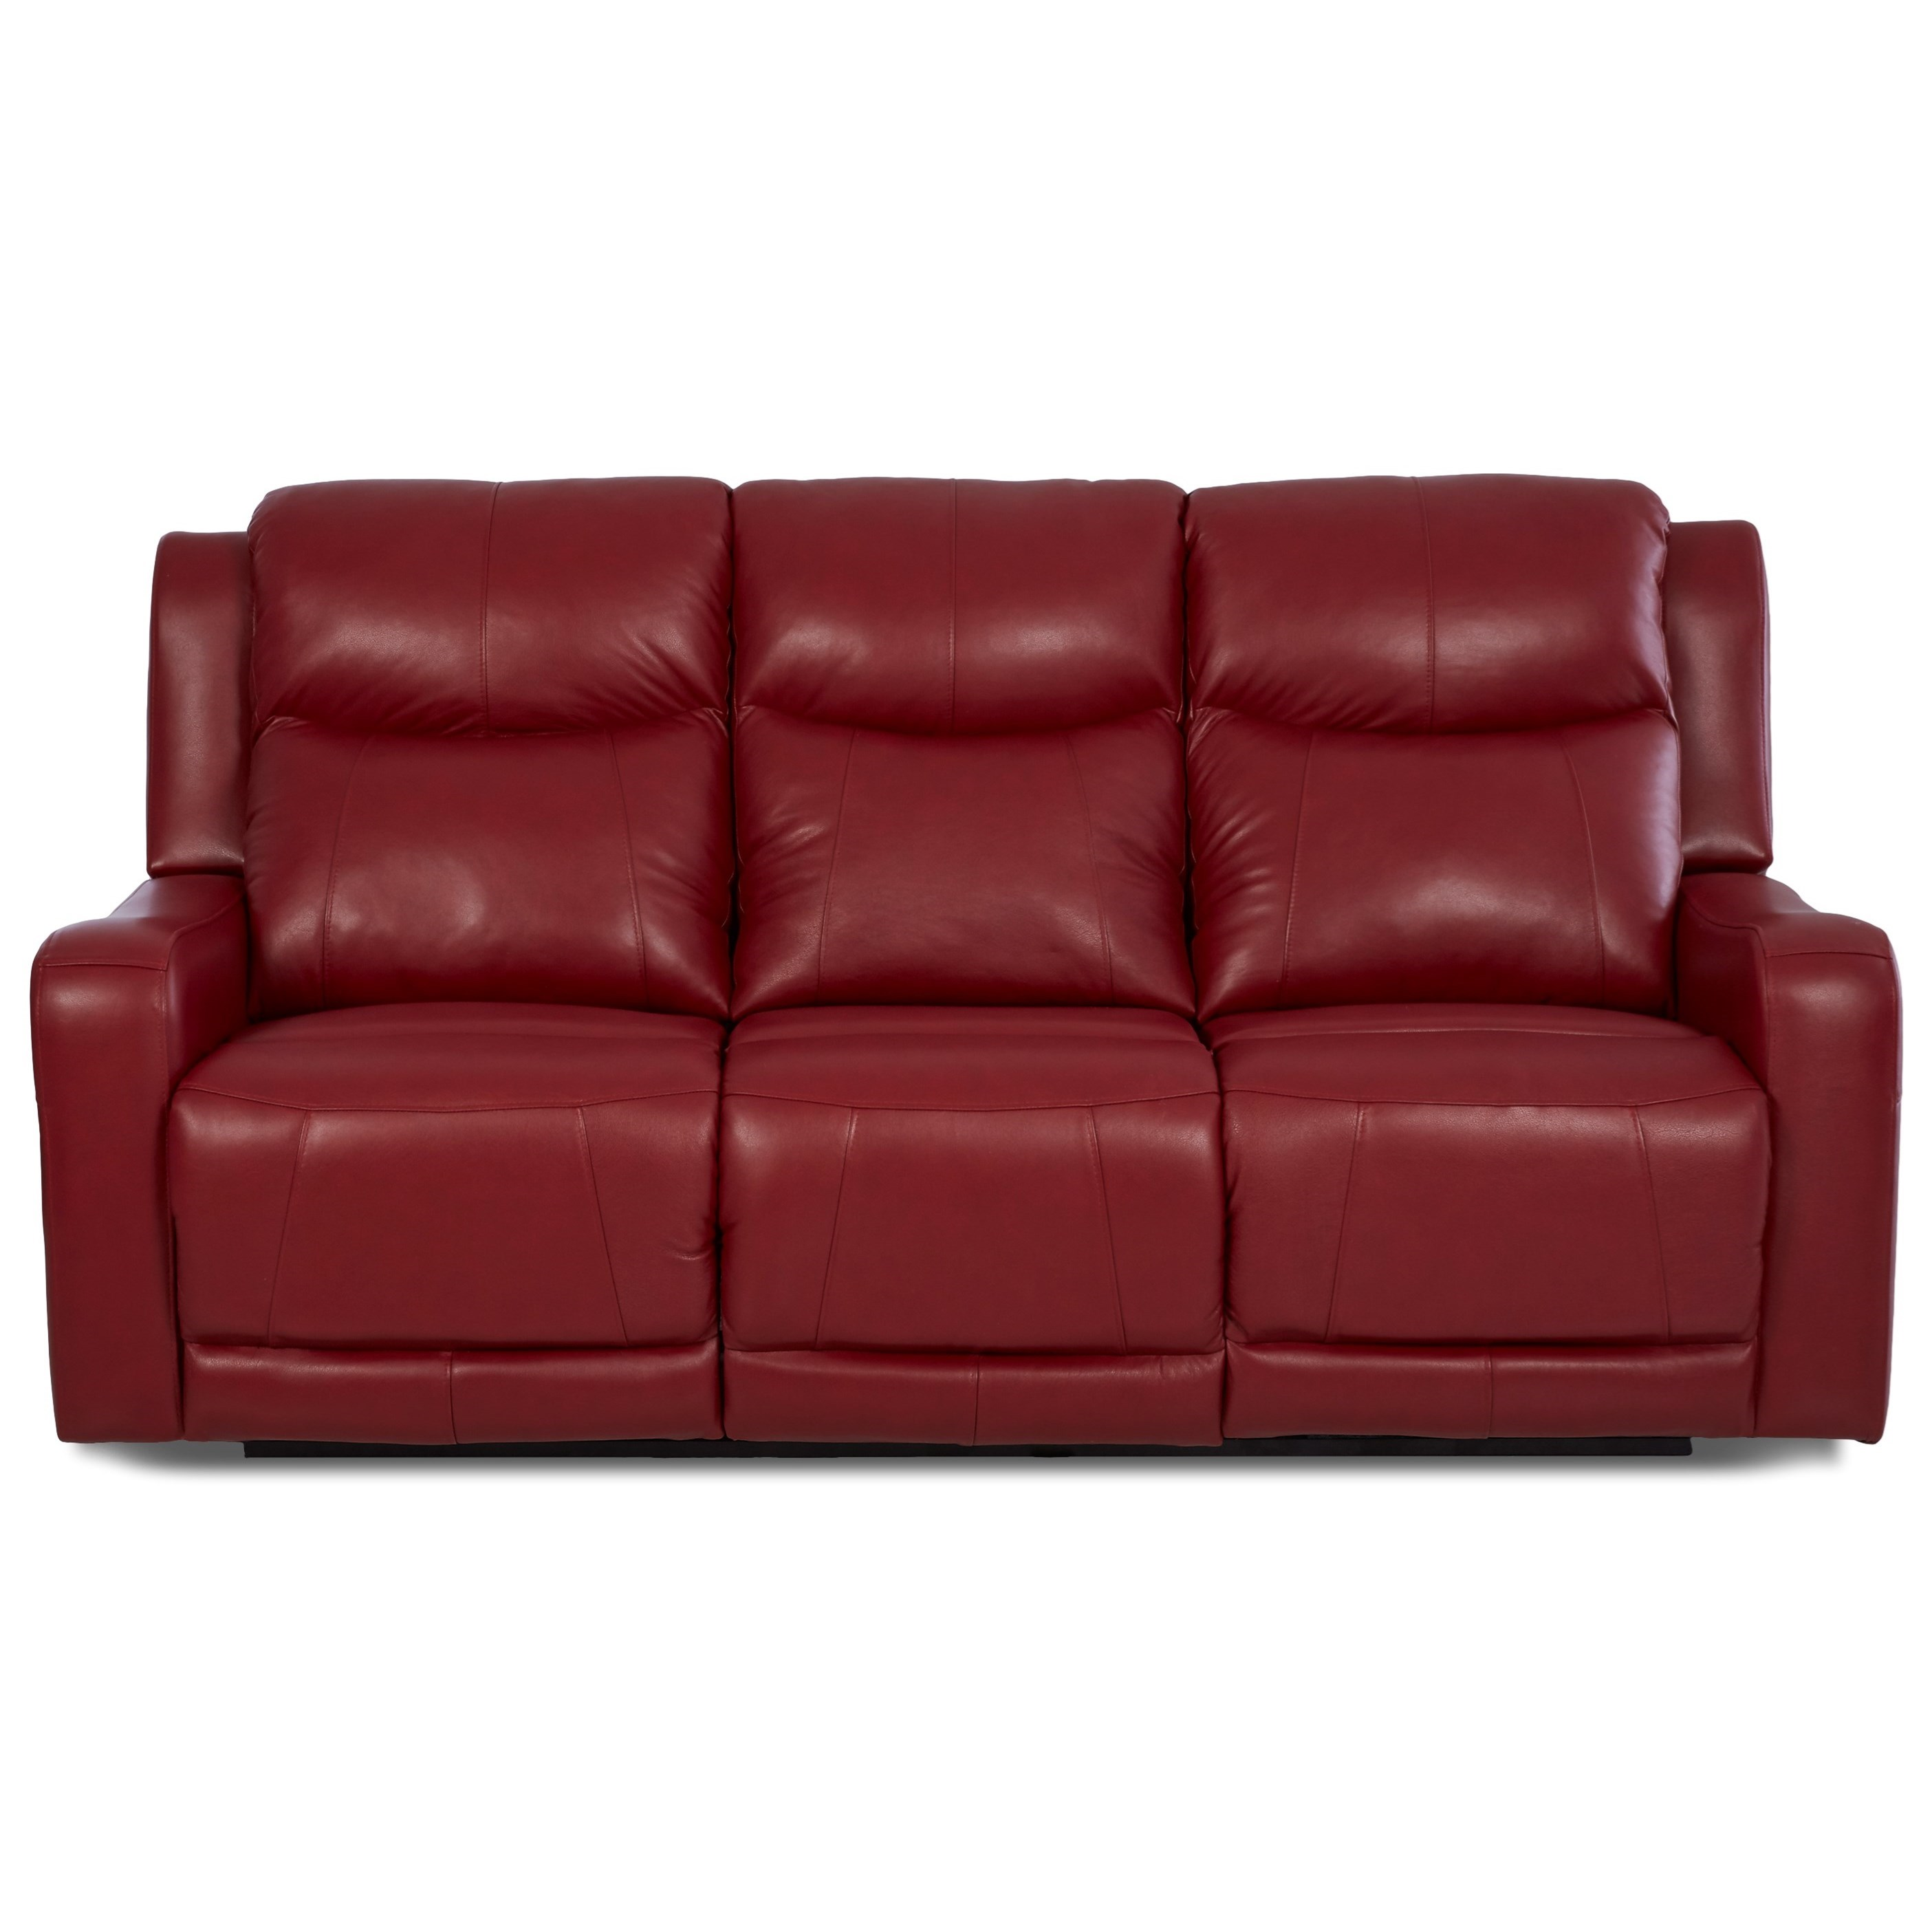 Power Reclining Sofa with Power Adjustable Headrest and Lumbar